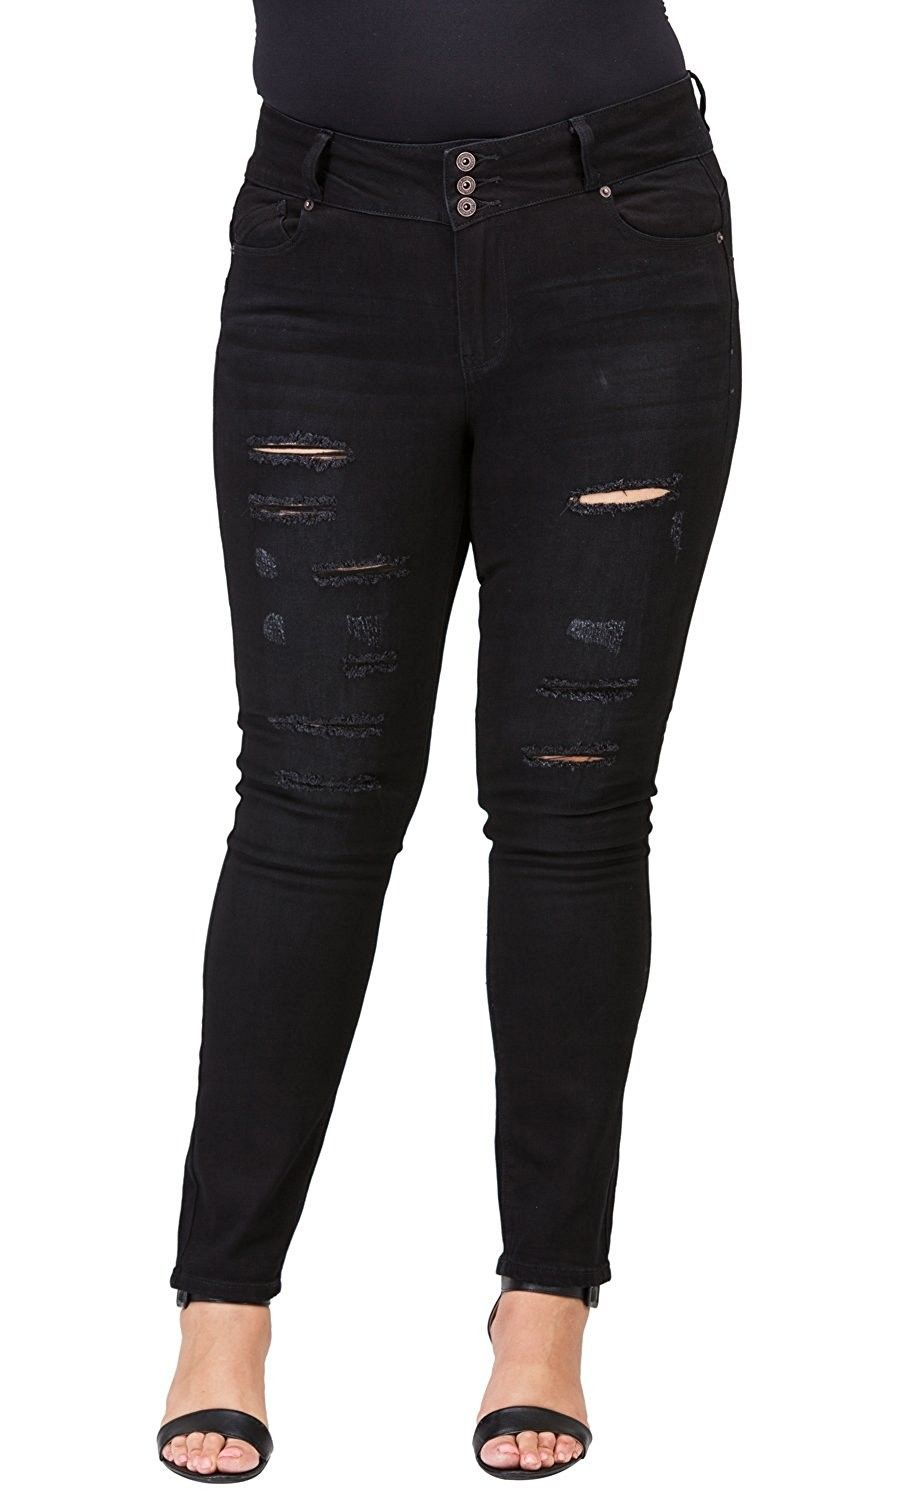 507fbd79f83d6 Women s Plus-Size Relaxed Fit Jeans - Black Rip9 - CY187S4LAE8 ...